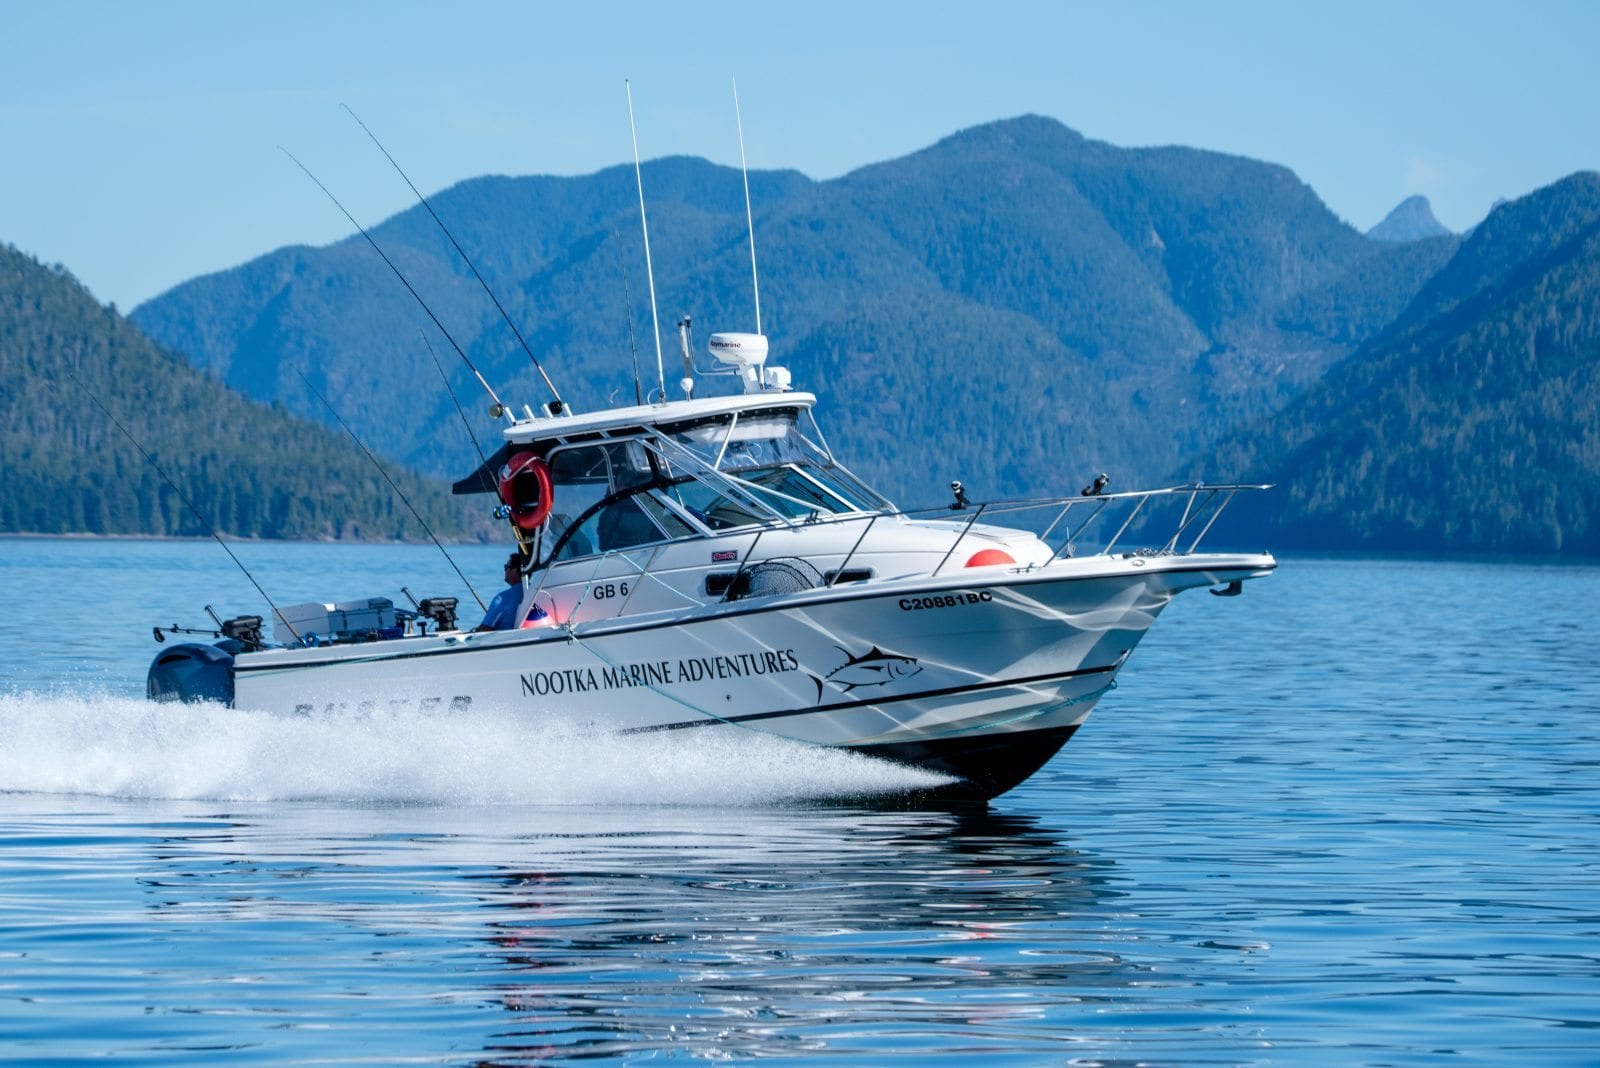 Nootka Marine Adventures Photos